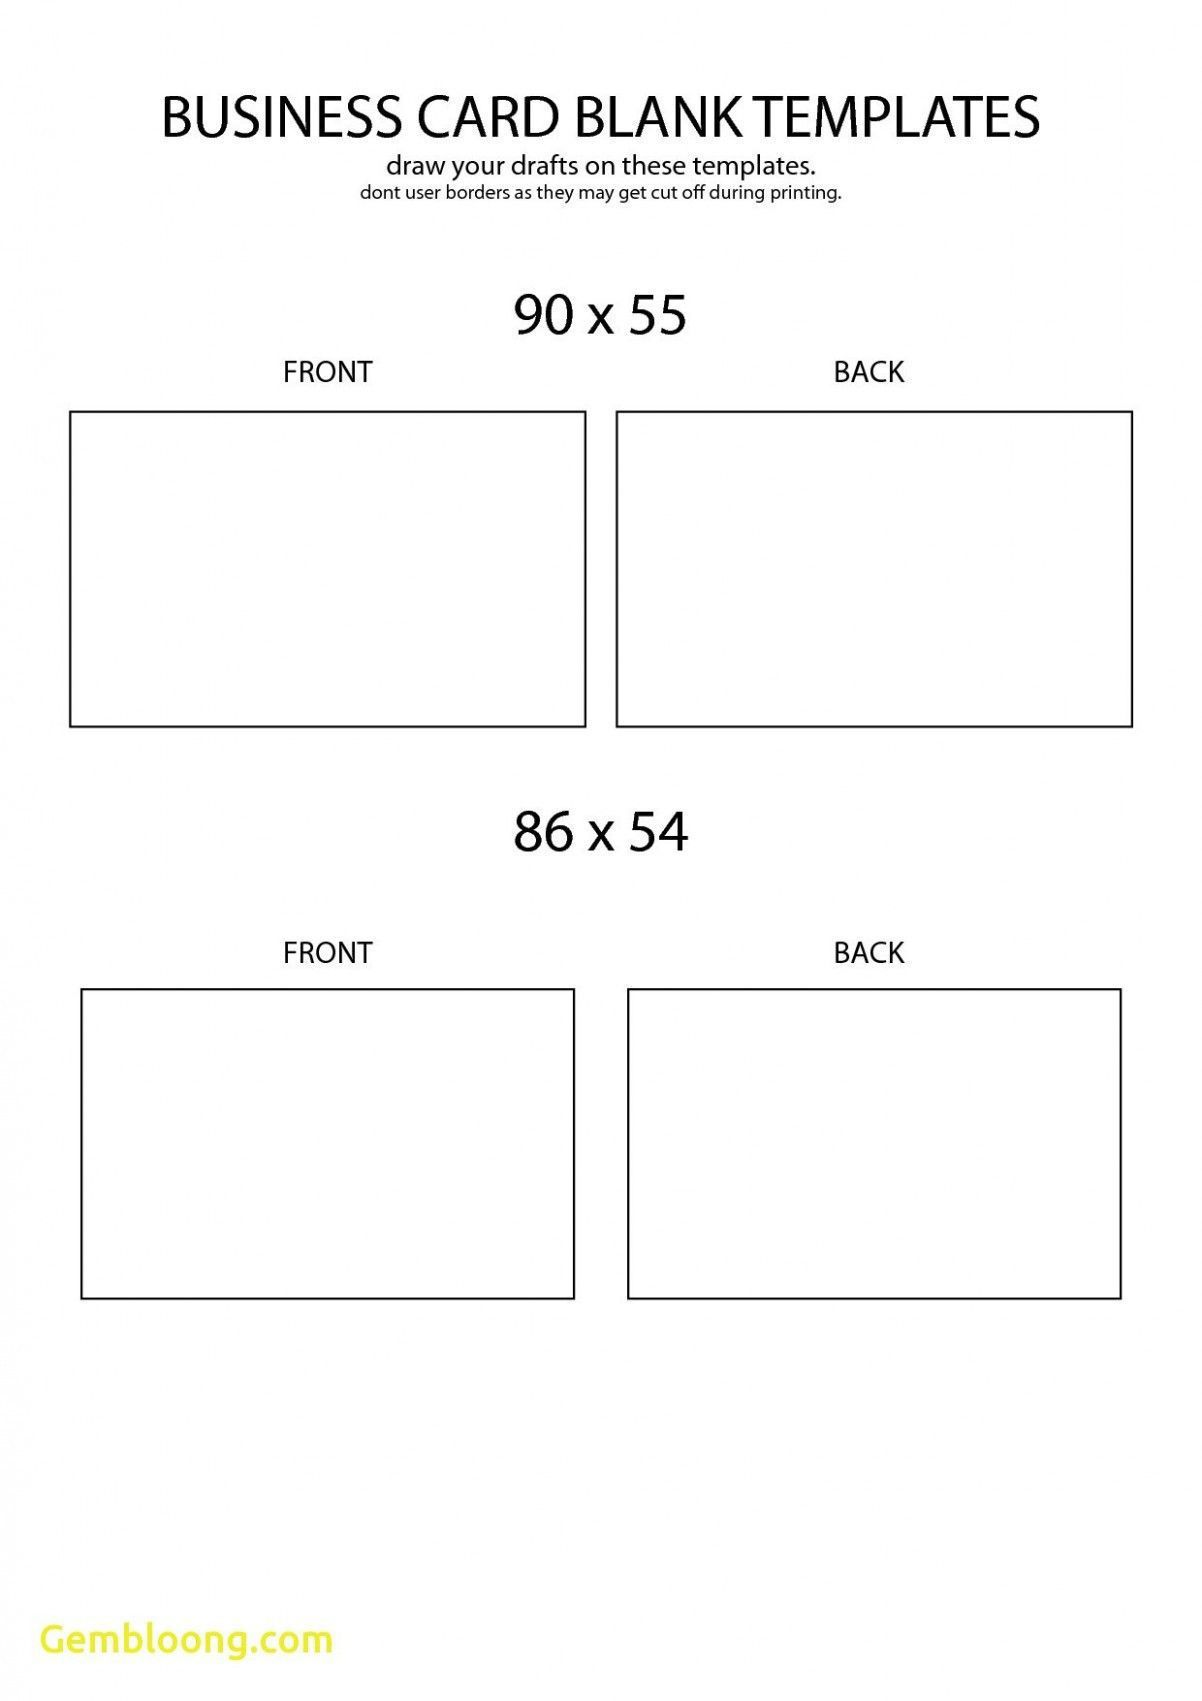 000 Rare Free Blank Busines Card Template High Resolution  Templates Online Printable For Word DownloadFull